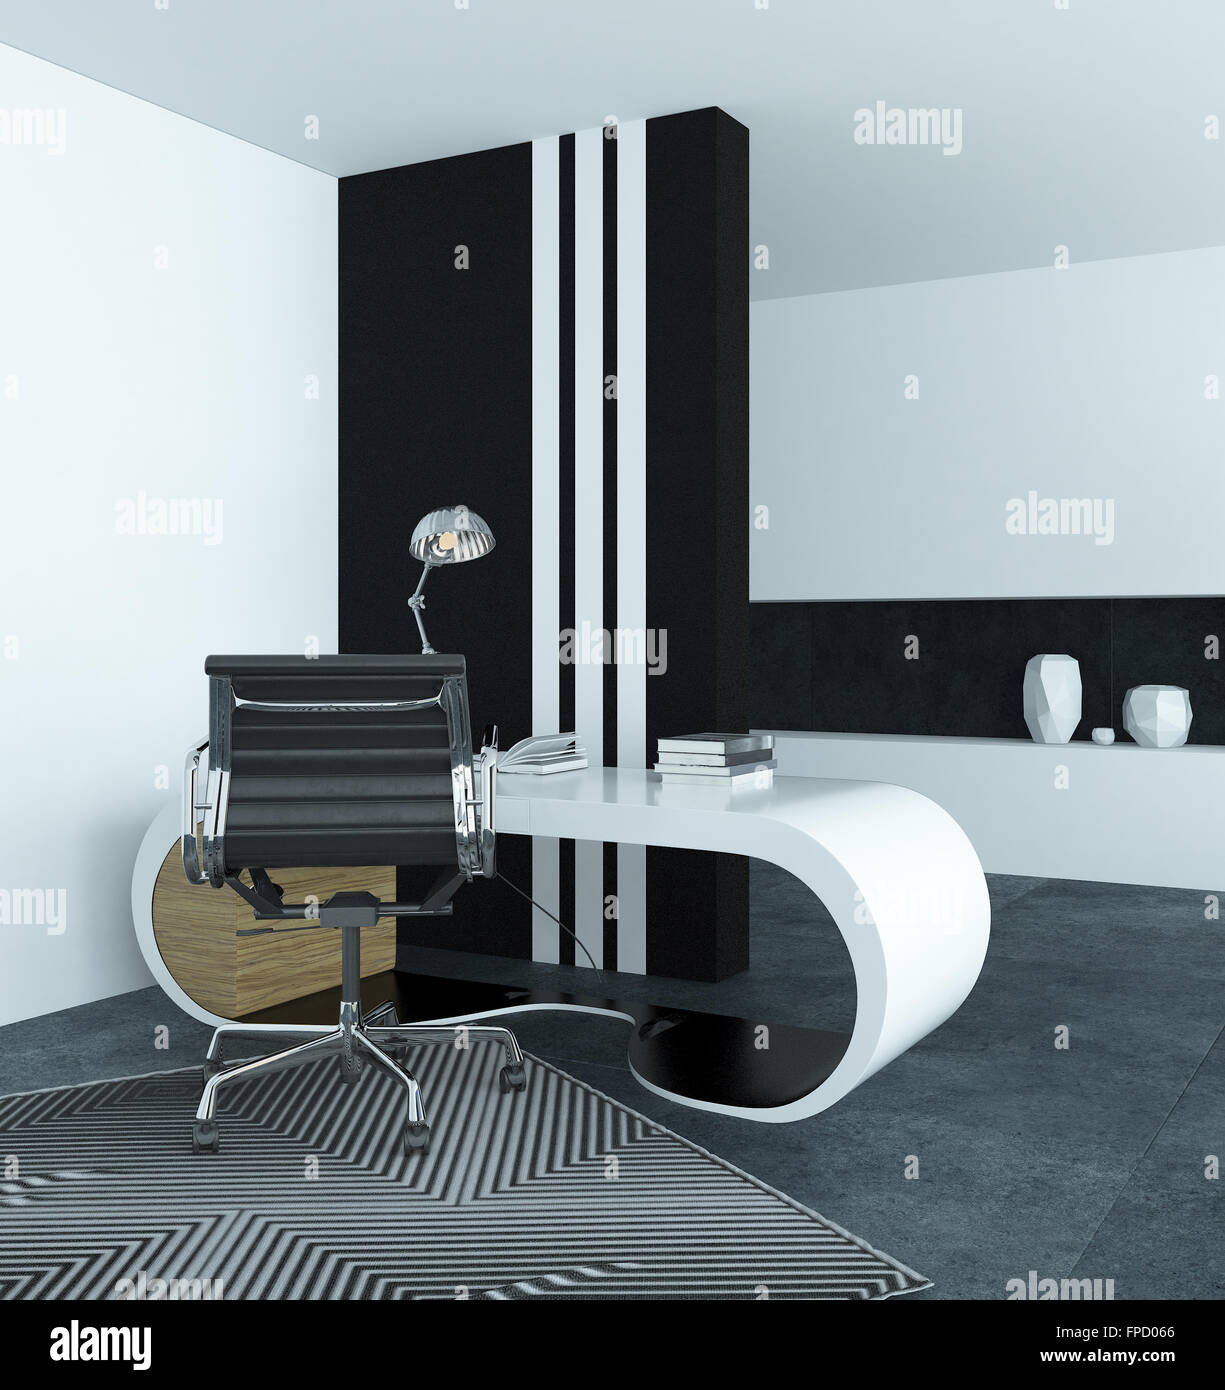 Image of: Curved Modern White Desk In A Study With A Dramatic Black And White Stock Photo Alamy